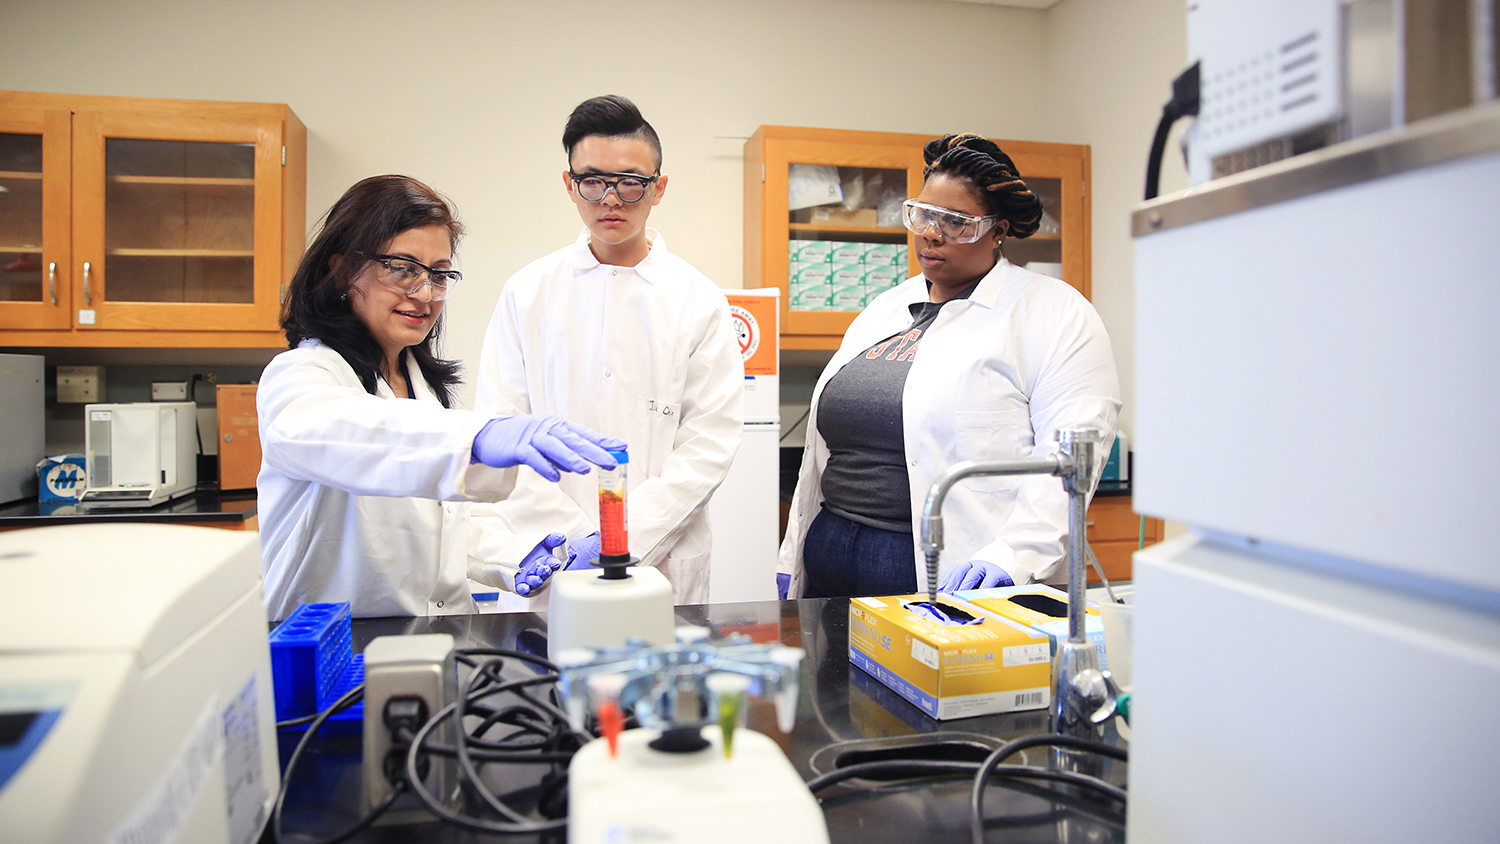 Standing in a laboratory, Dr. Budhathoki-Uprety demonstrates a testing process to two students.